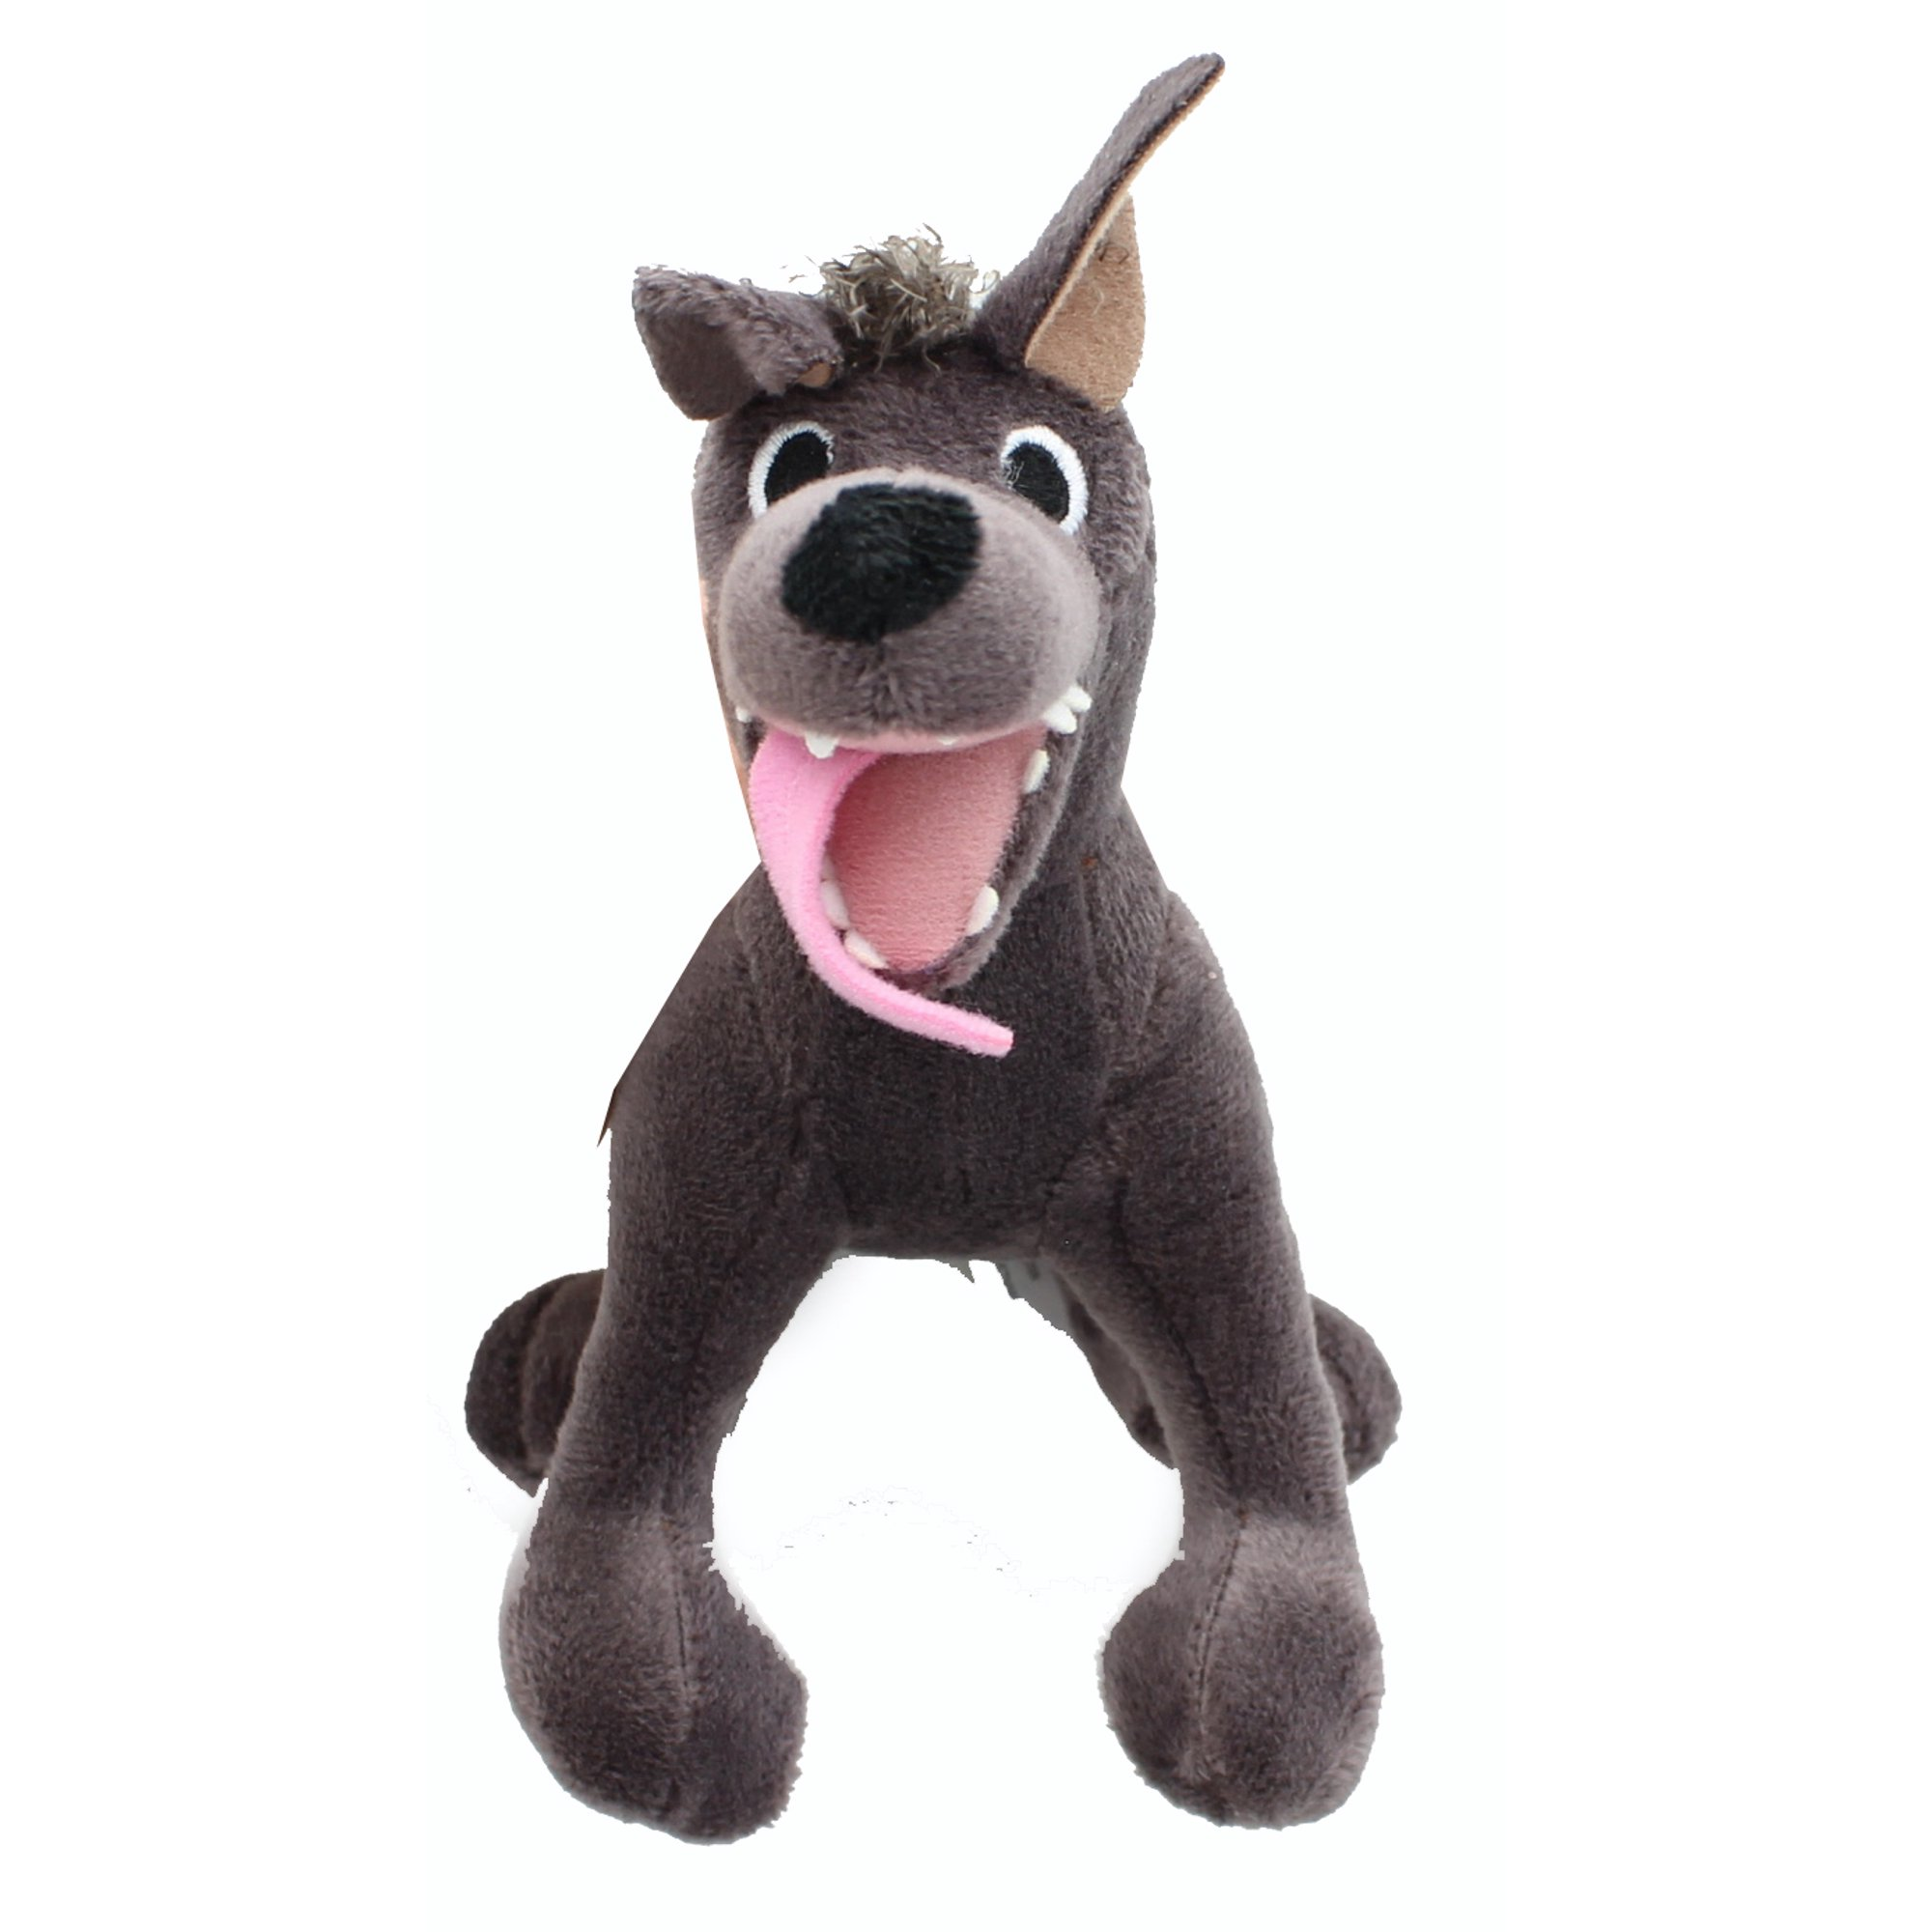 Disney Pixar Coco 7 5 Inch Plush Toy Dante